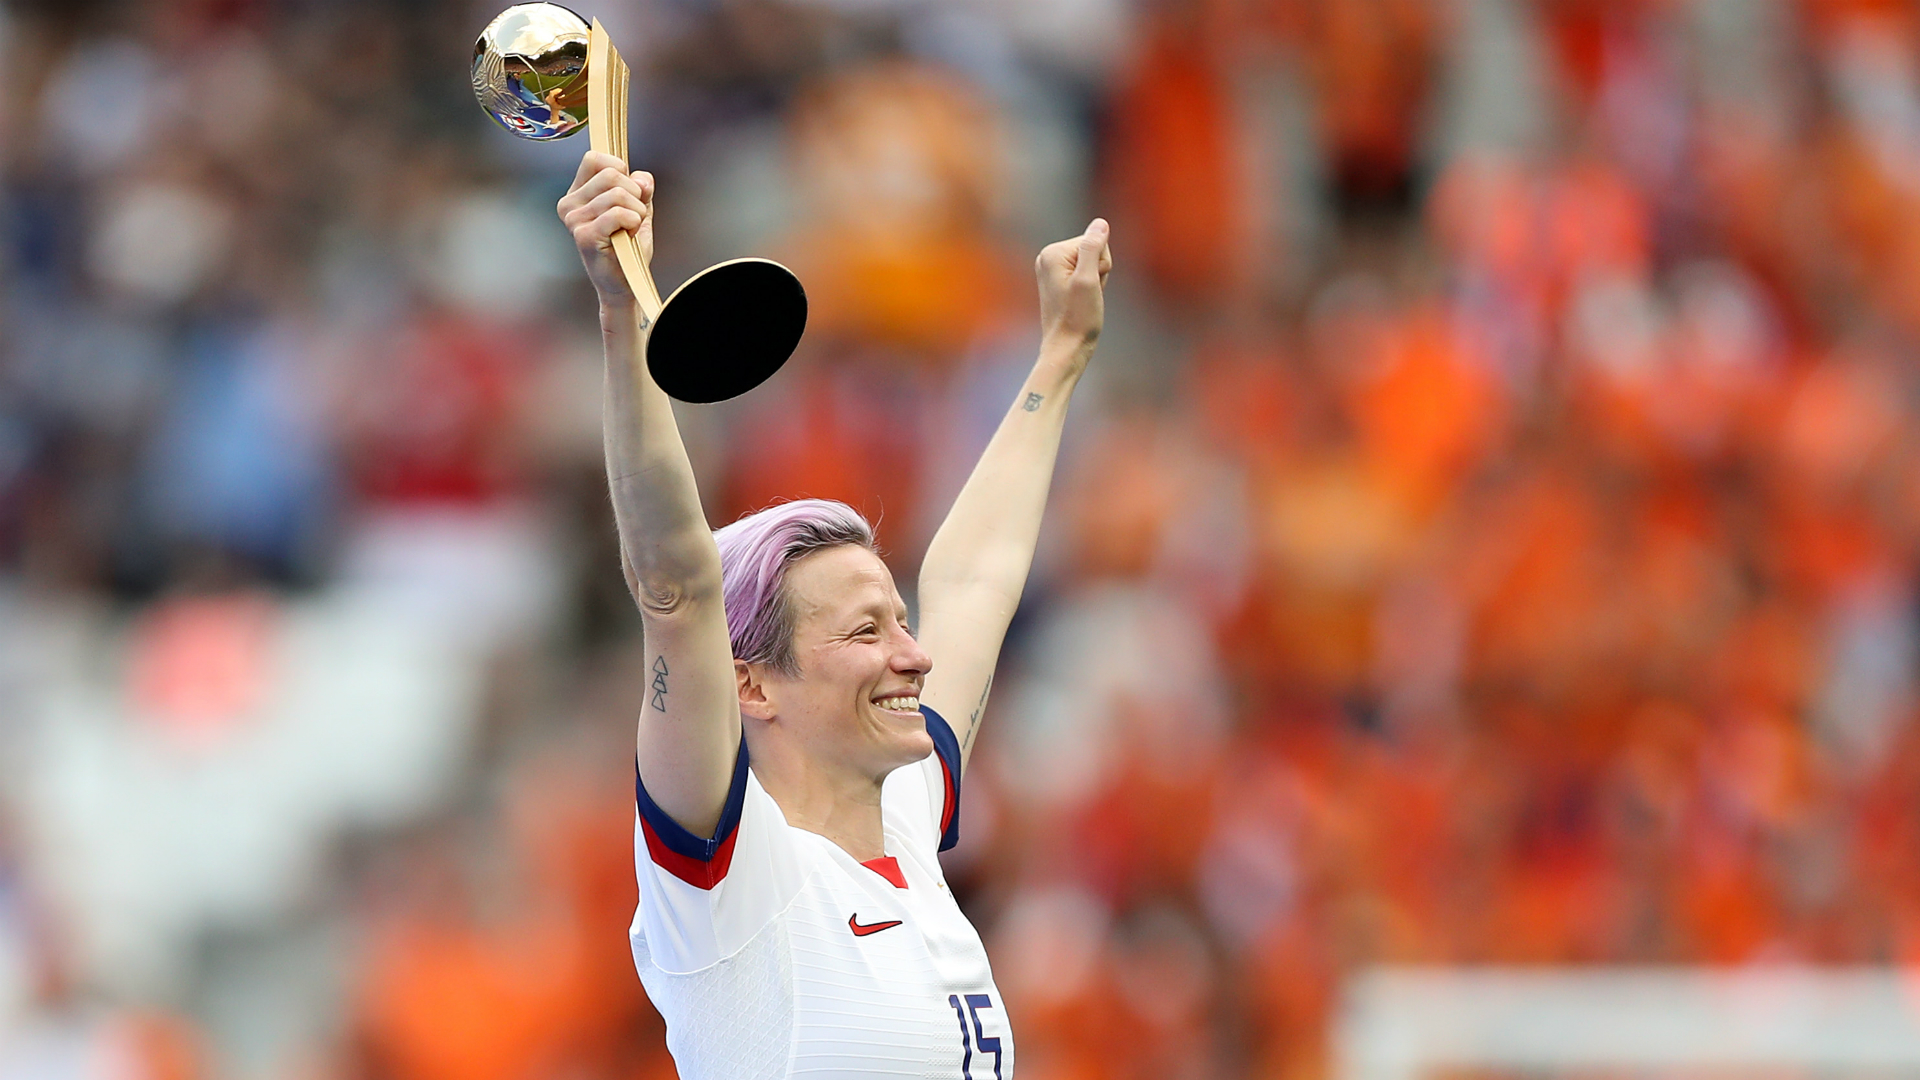 Women's World Cup 2019: Rapinoe conquered critics, doubters, haters, the Netherlands — and the planet